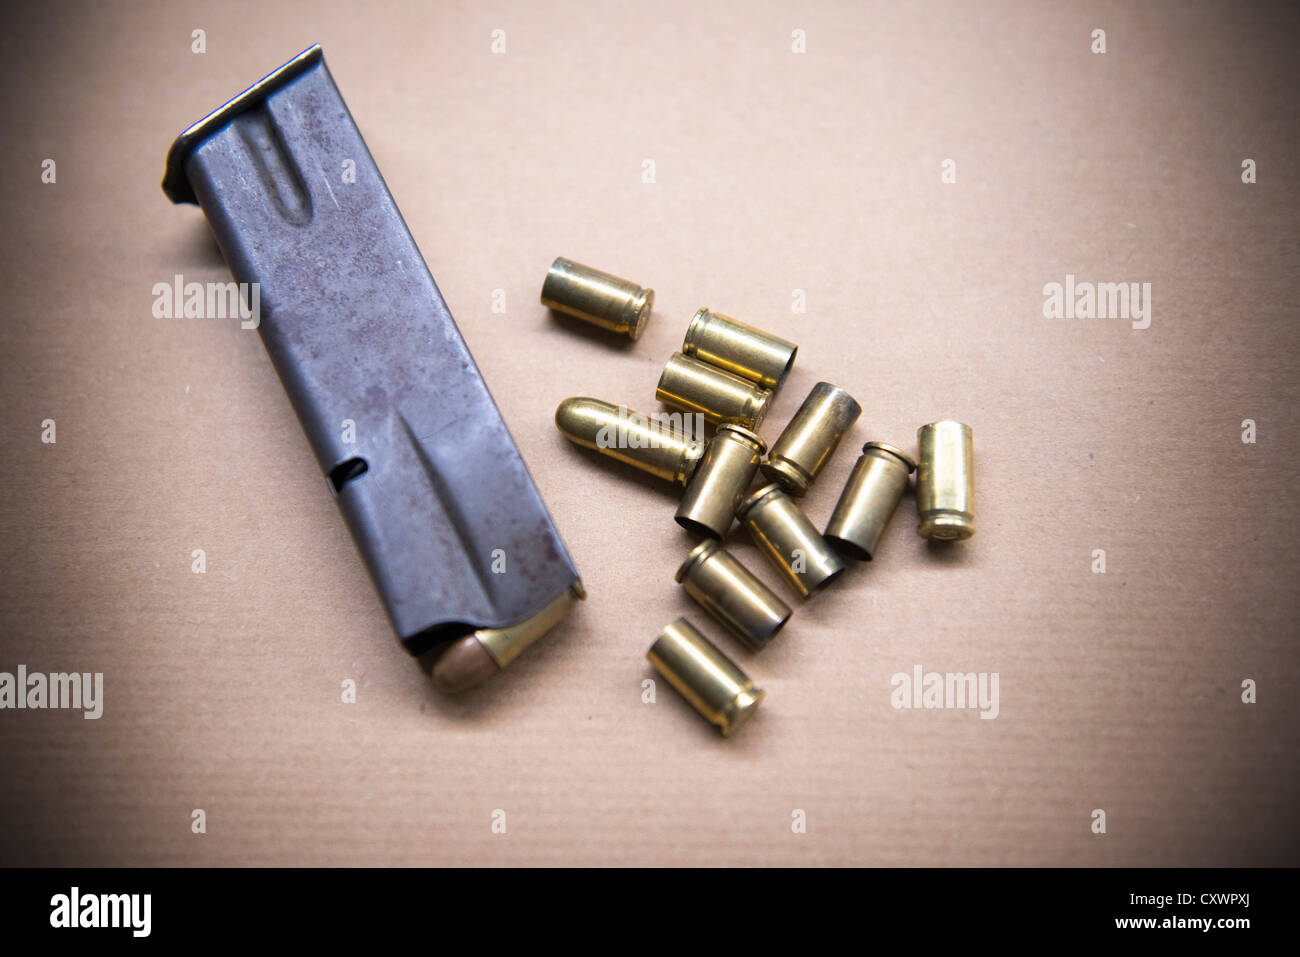 Close up of bullet casings and clip - Stock Image